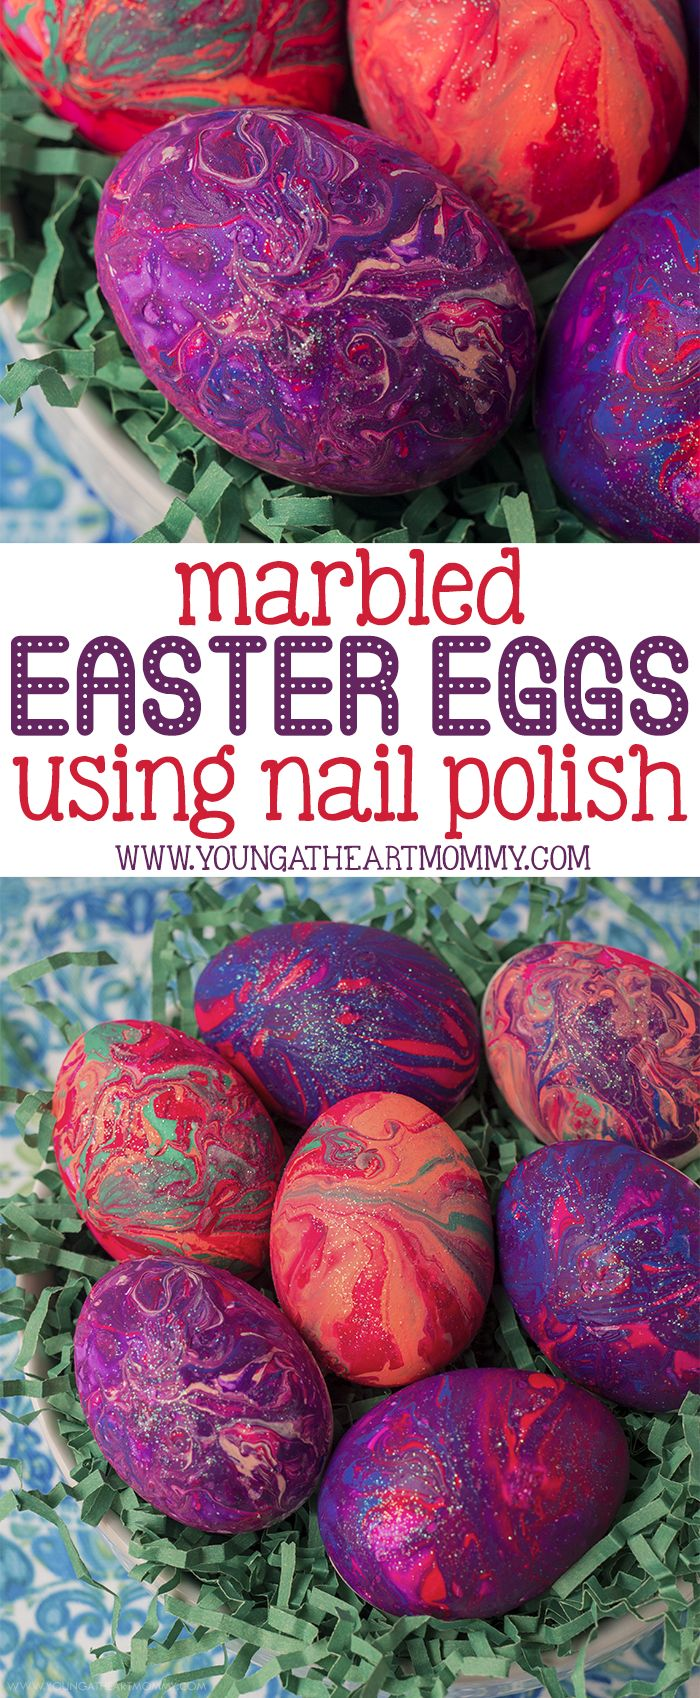 Take your Easter egg decorating skills to the next level by using nail polish to create colorful marbled patterns & swirls! #IceAgeEaster #ad